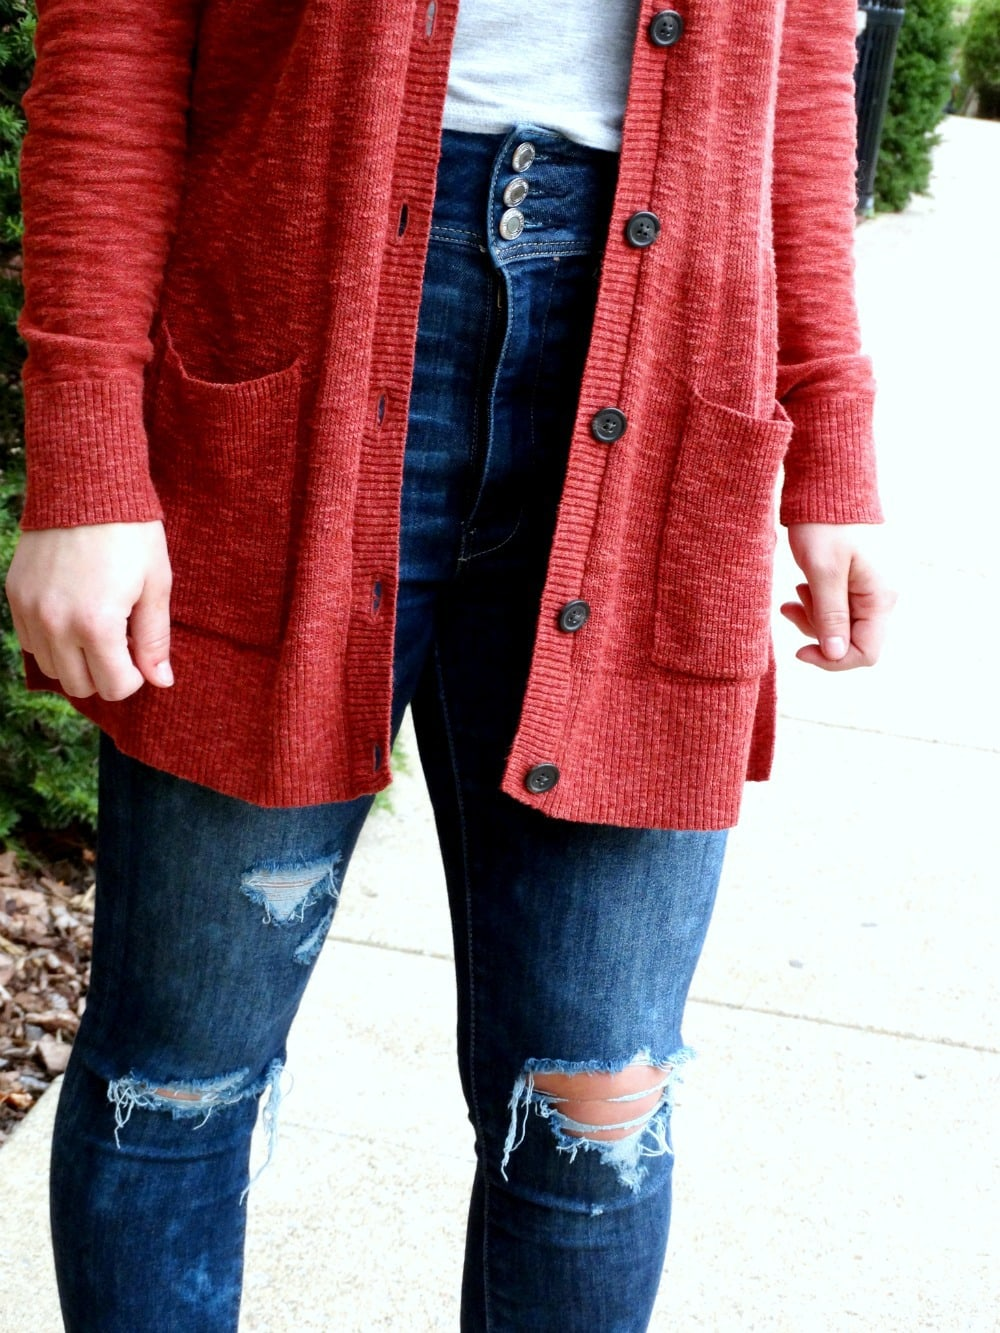 Long apple red cardigan with pockets contrasts against this West Virginia student's three-button denim jeans and basic grey t-shirt.